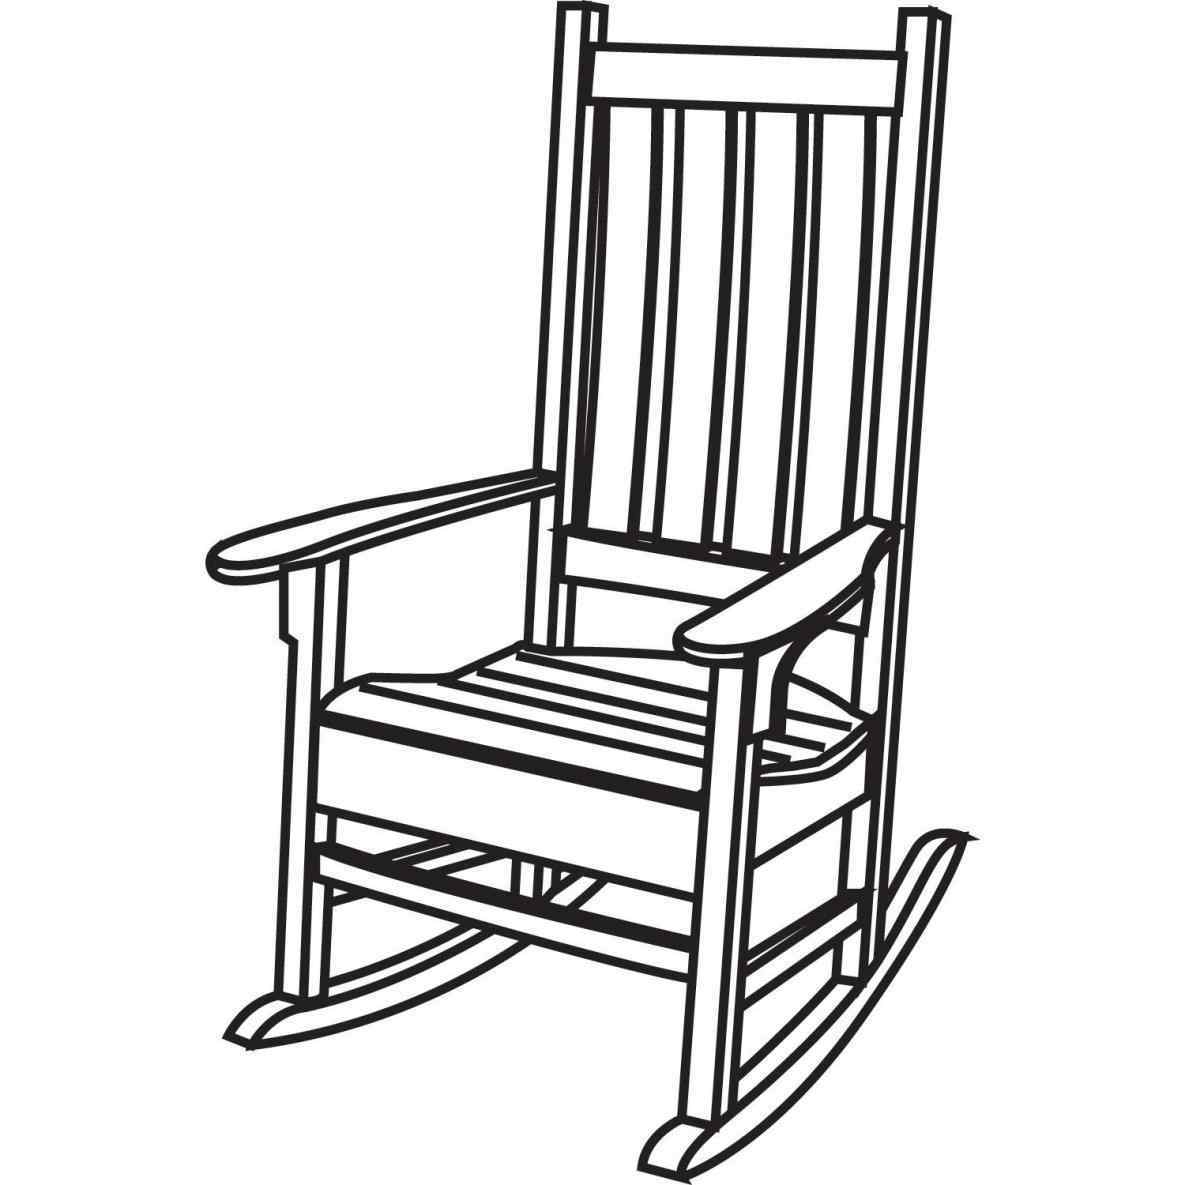 drawing chair byuh drawing rocking chair drawing chair drawing